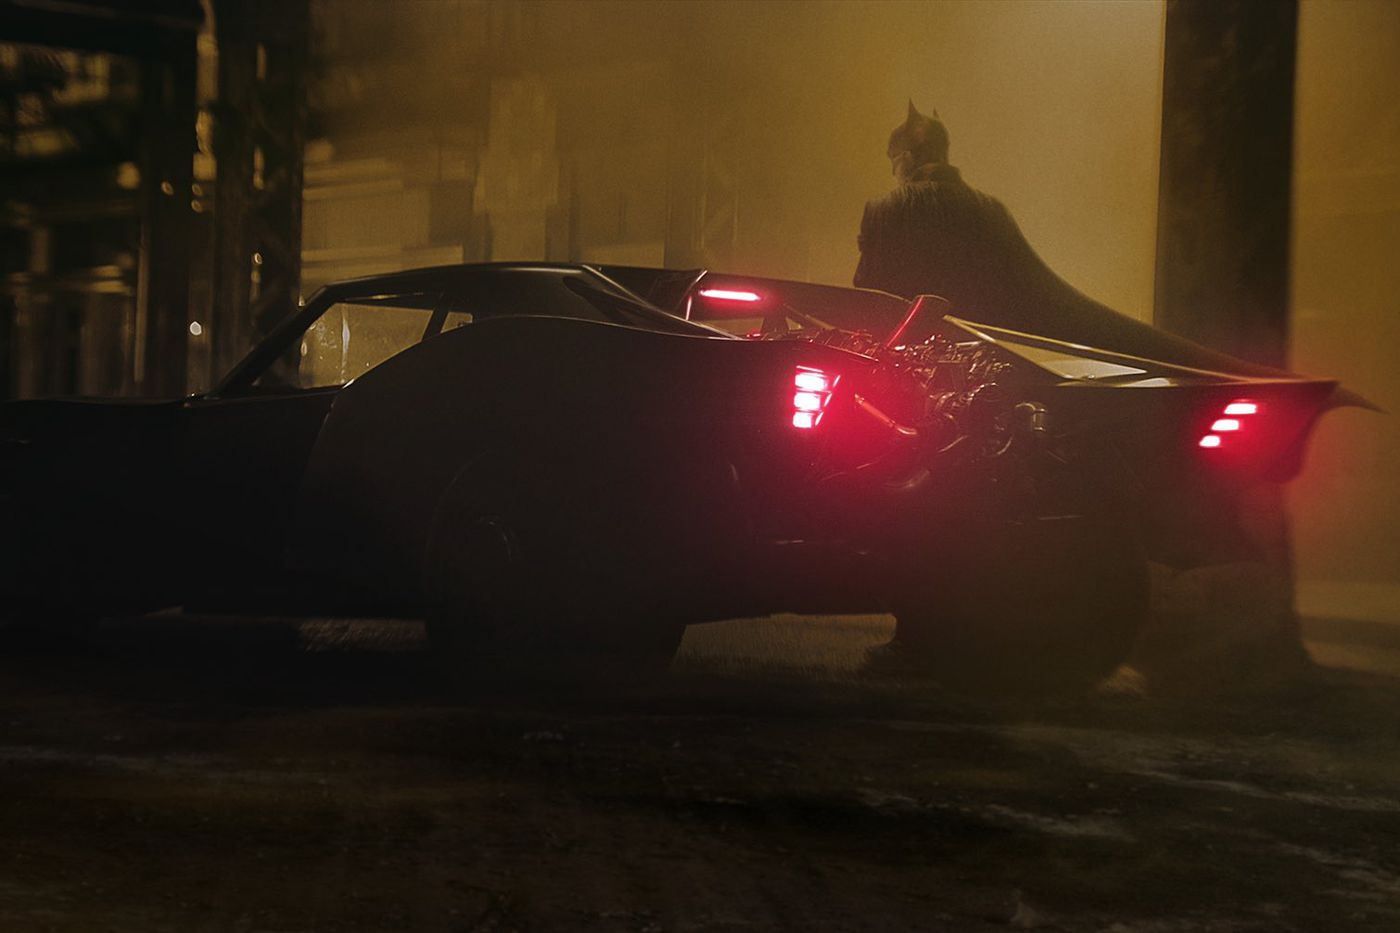 What Robert Pattinson S Batmobile Has In Common With Batman S Early Comics Cars Polygon